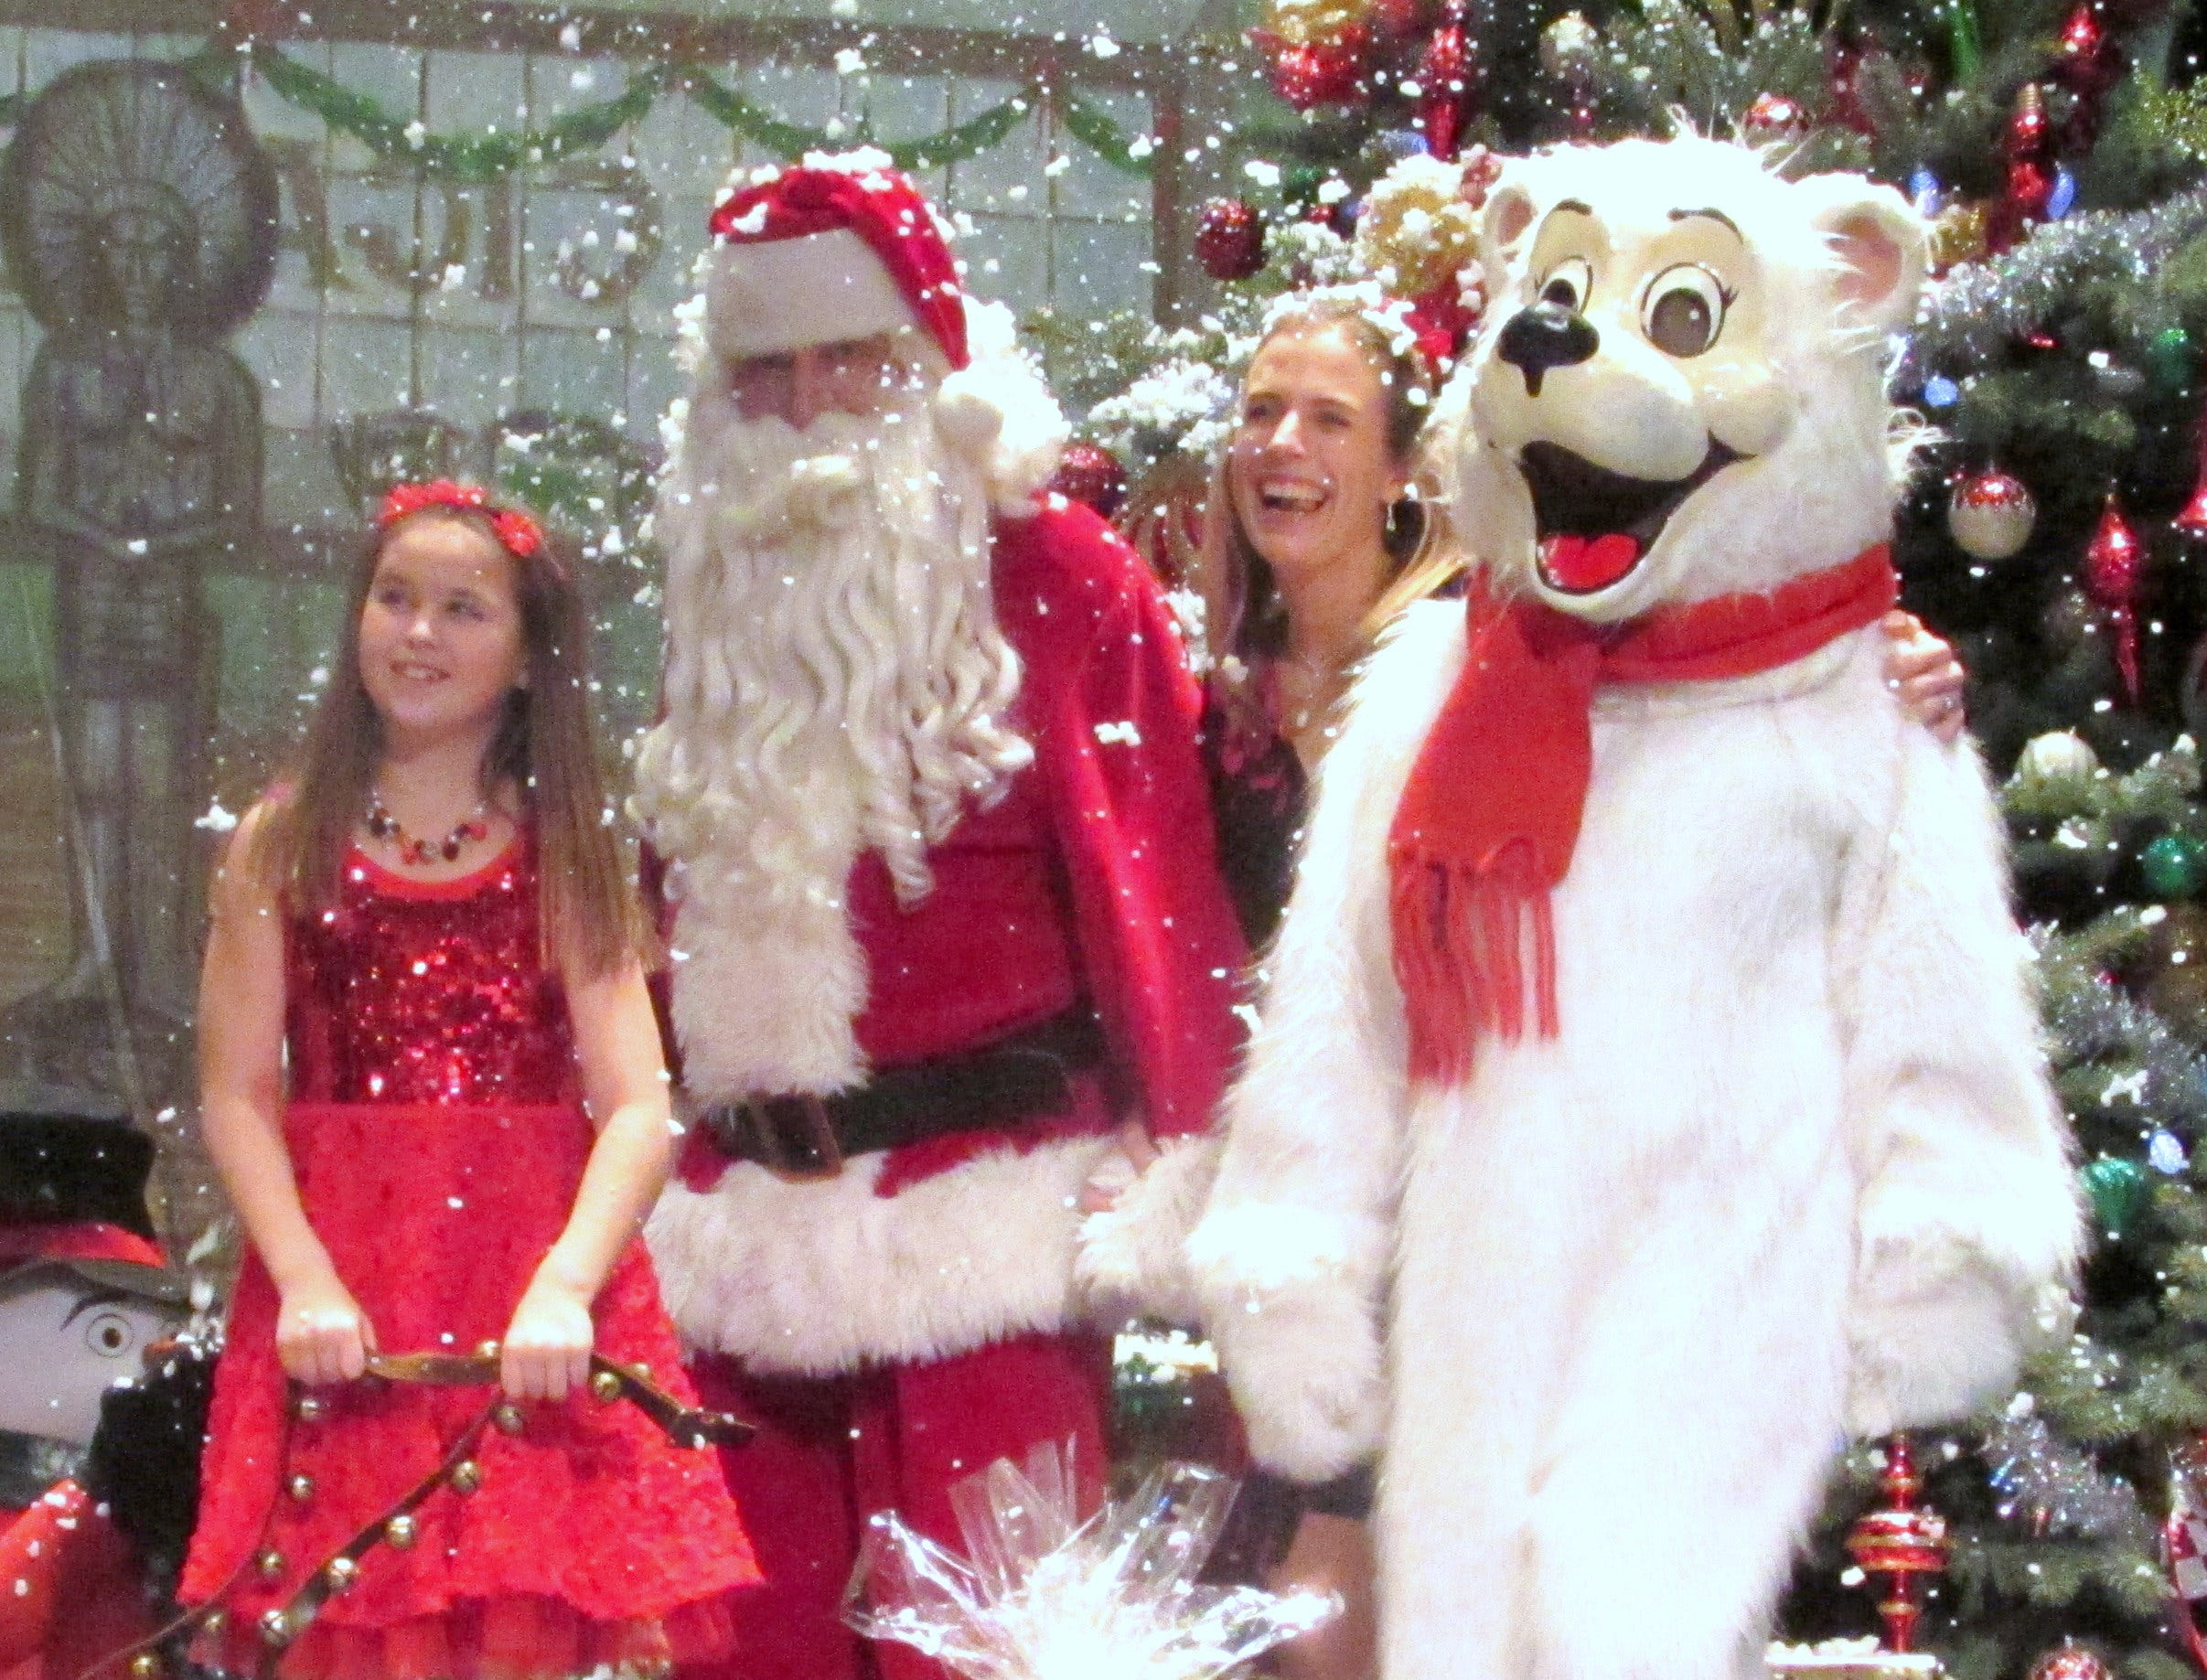 Arctic League bell ringer Riley Fesetch, left, and Christina Bruner join Santa and the Arctic League mascot during the finale of the annual broadcast at the Clemens Center in Elmira in 2015.